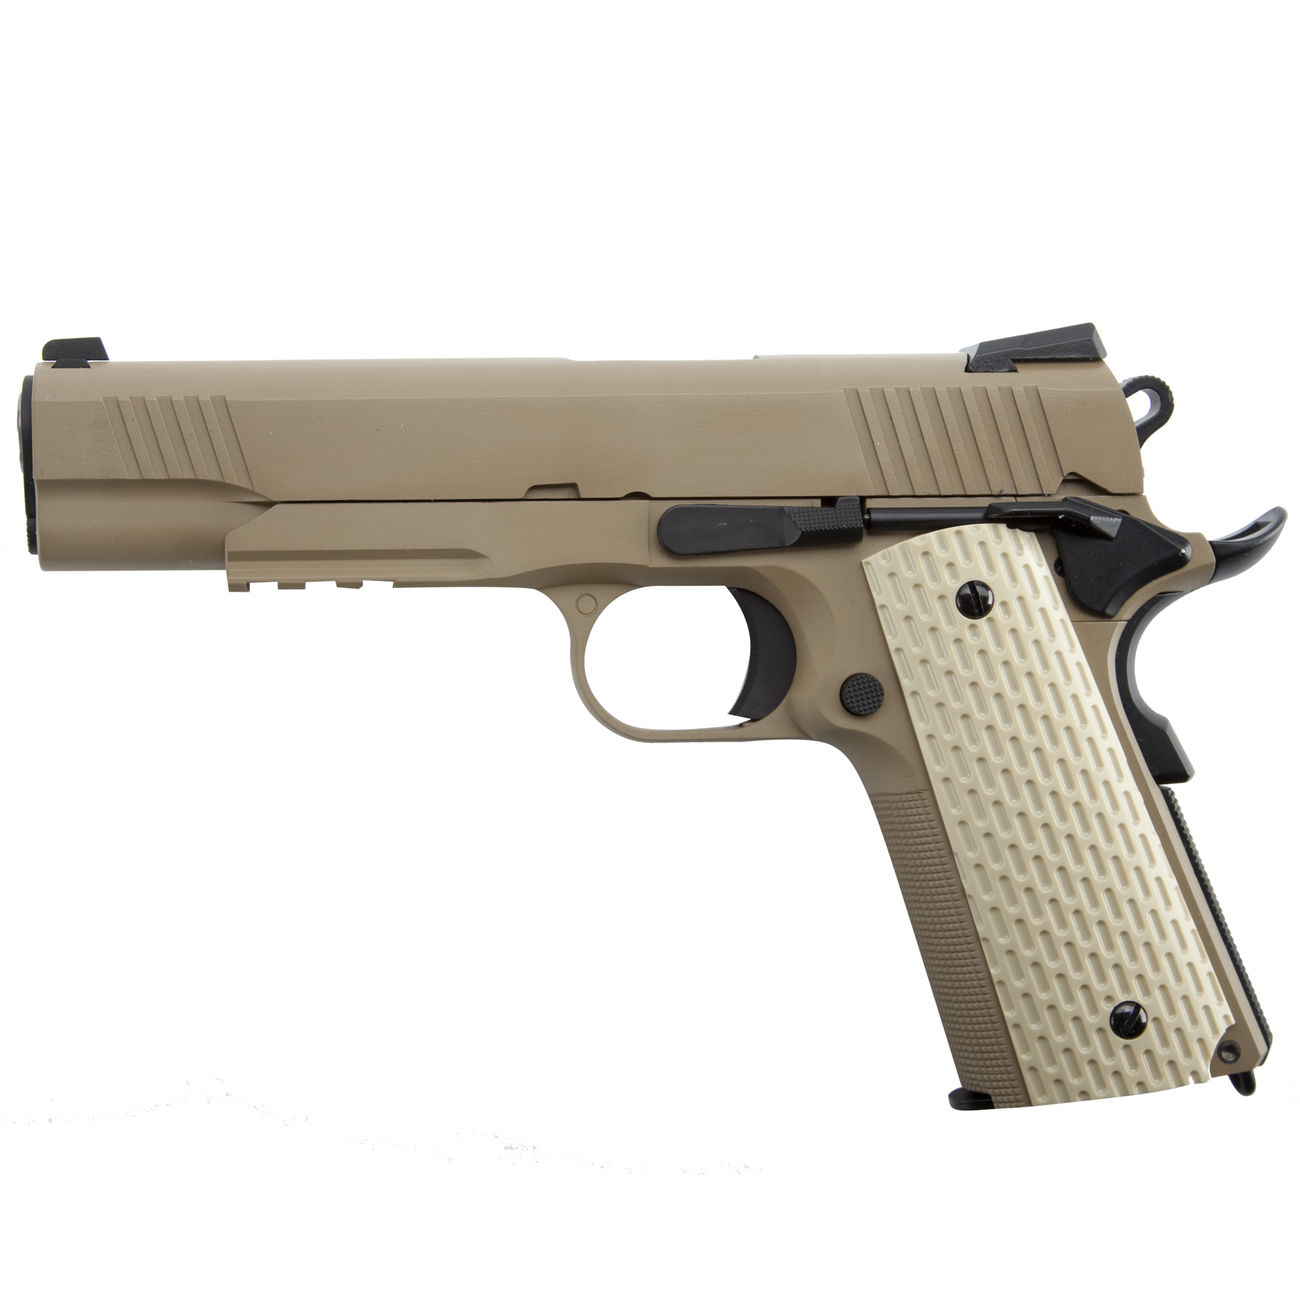 Wei-ETech Kbr-Style Warrior .45 ACP Vollmetall GBB 6mm BB Desert Tan 1